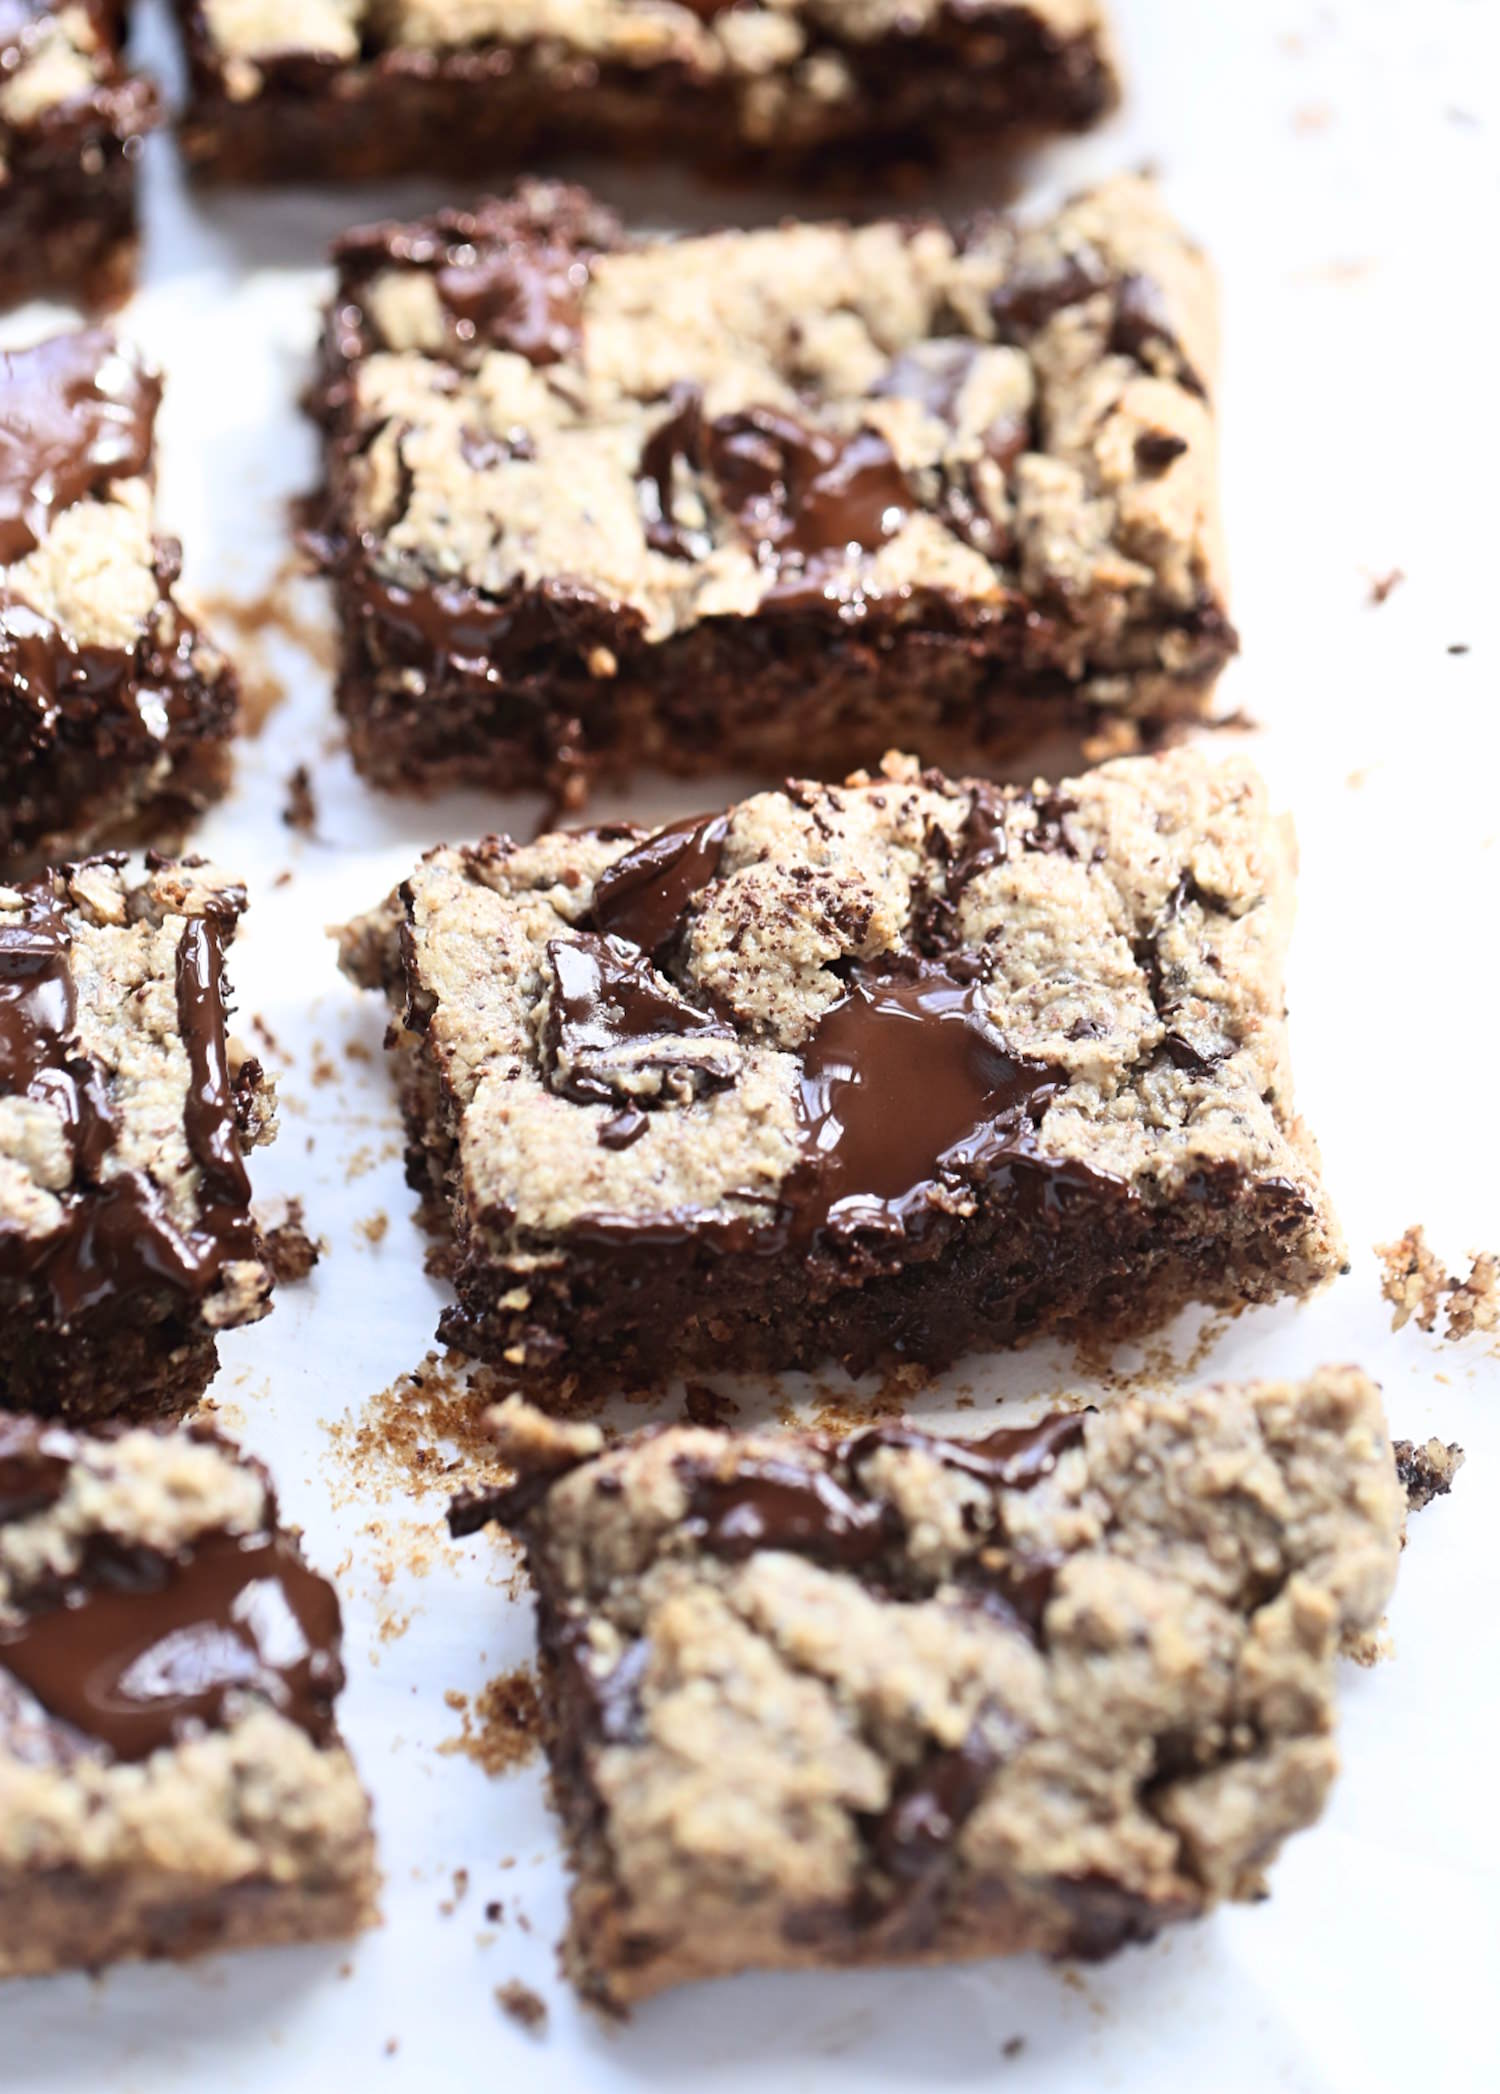 Wholesome Breakfast Bars: soft and chewy bars made with nut butters, honey, oats, coconut, and chocolate chunks. So nutritious and easy! | TrufflesandTrends.com